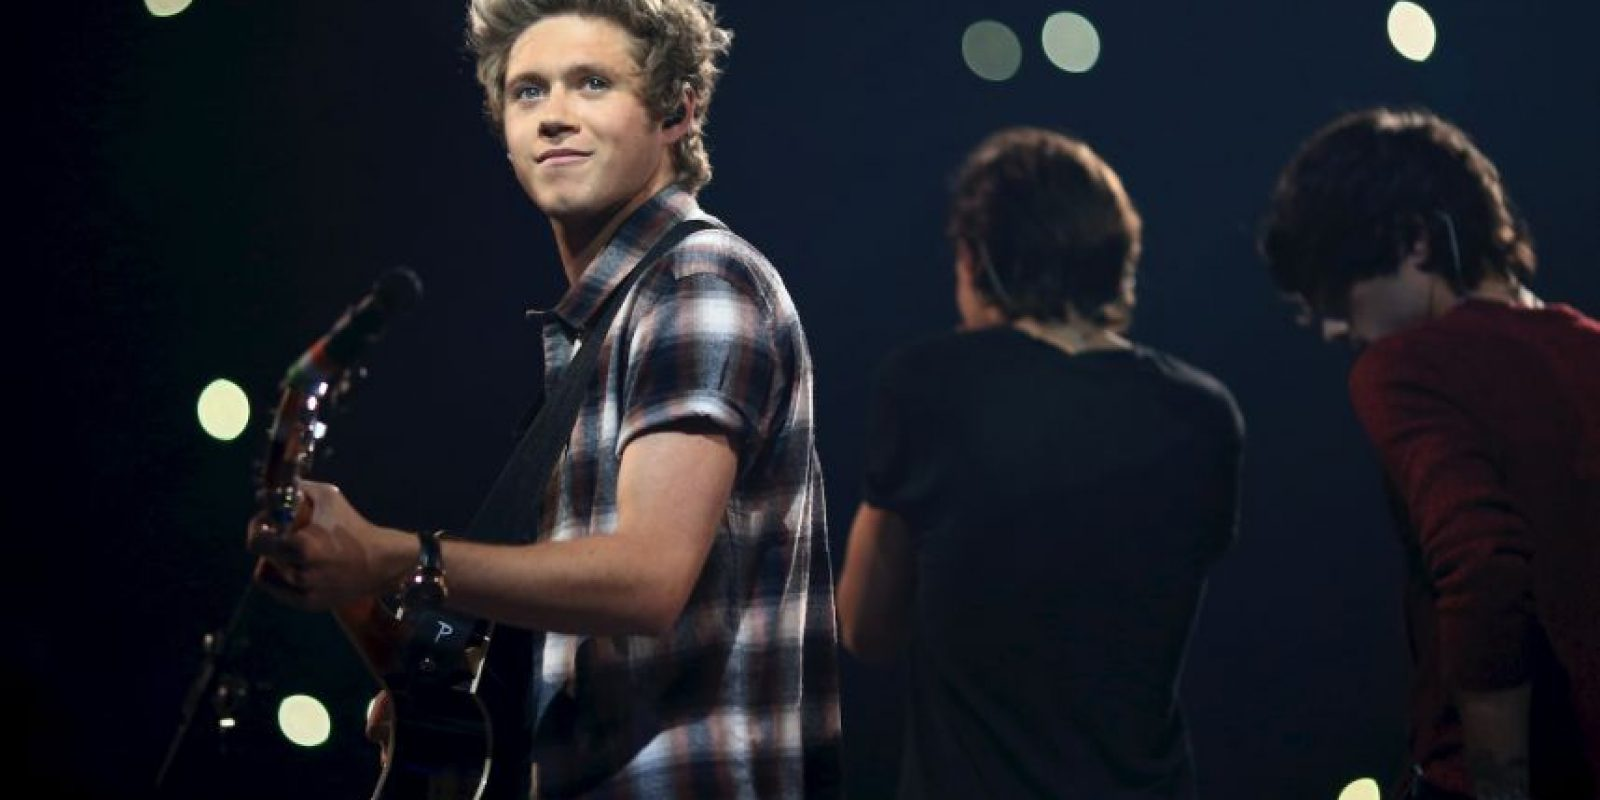 Niall Horan, integrante de One Direction Foto: Getty Images